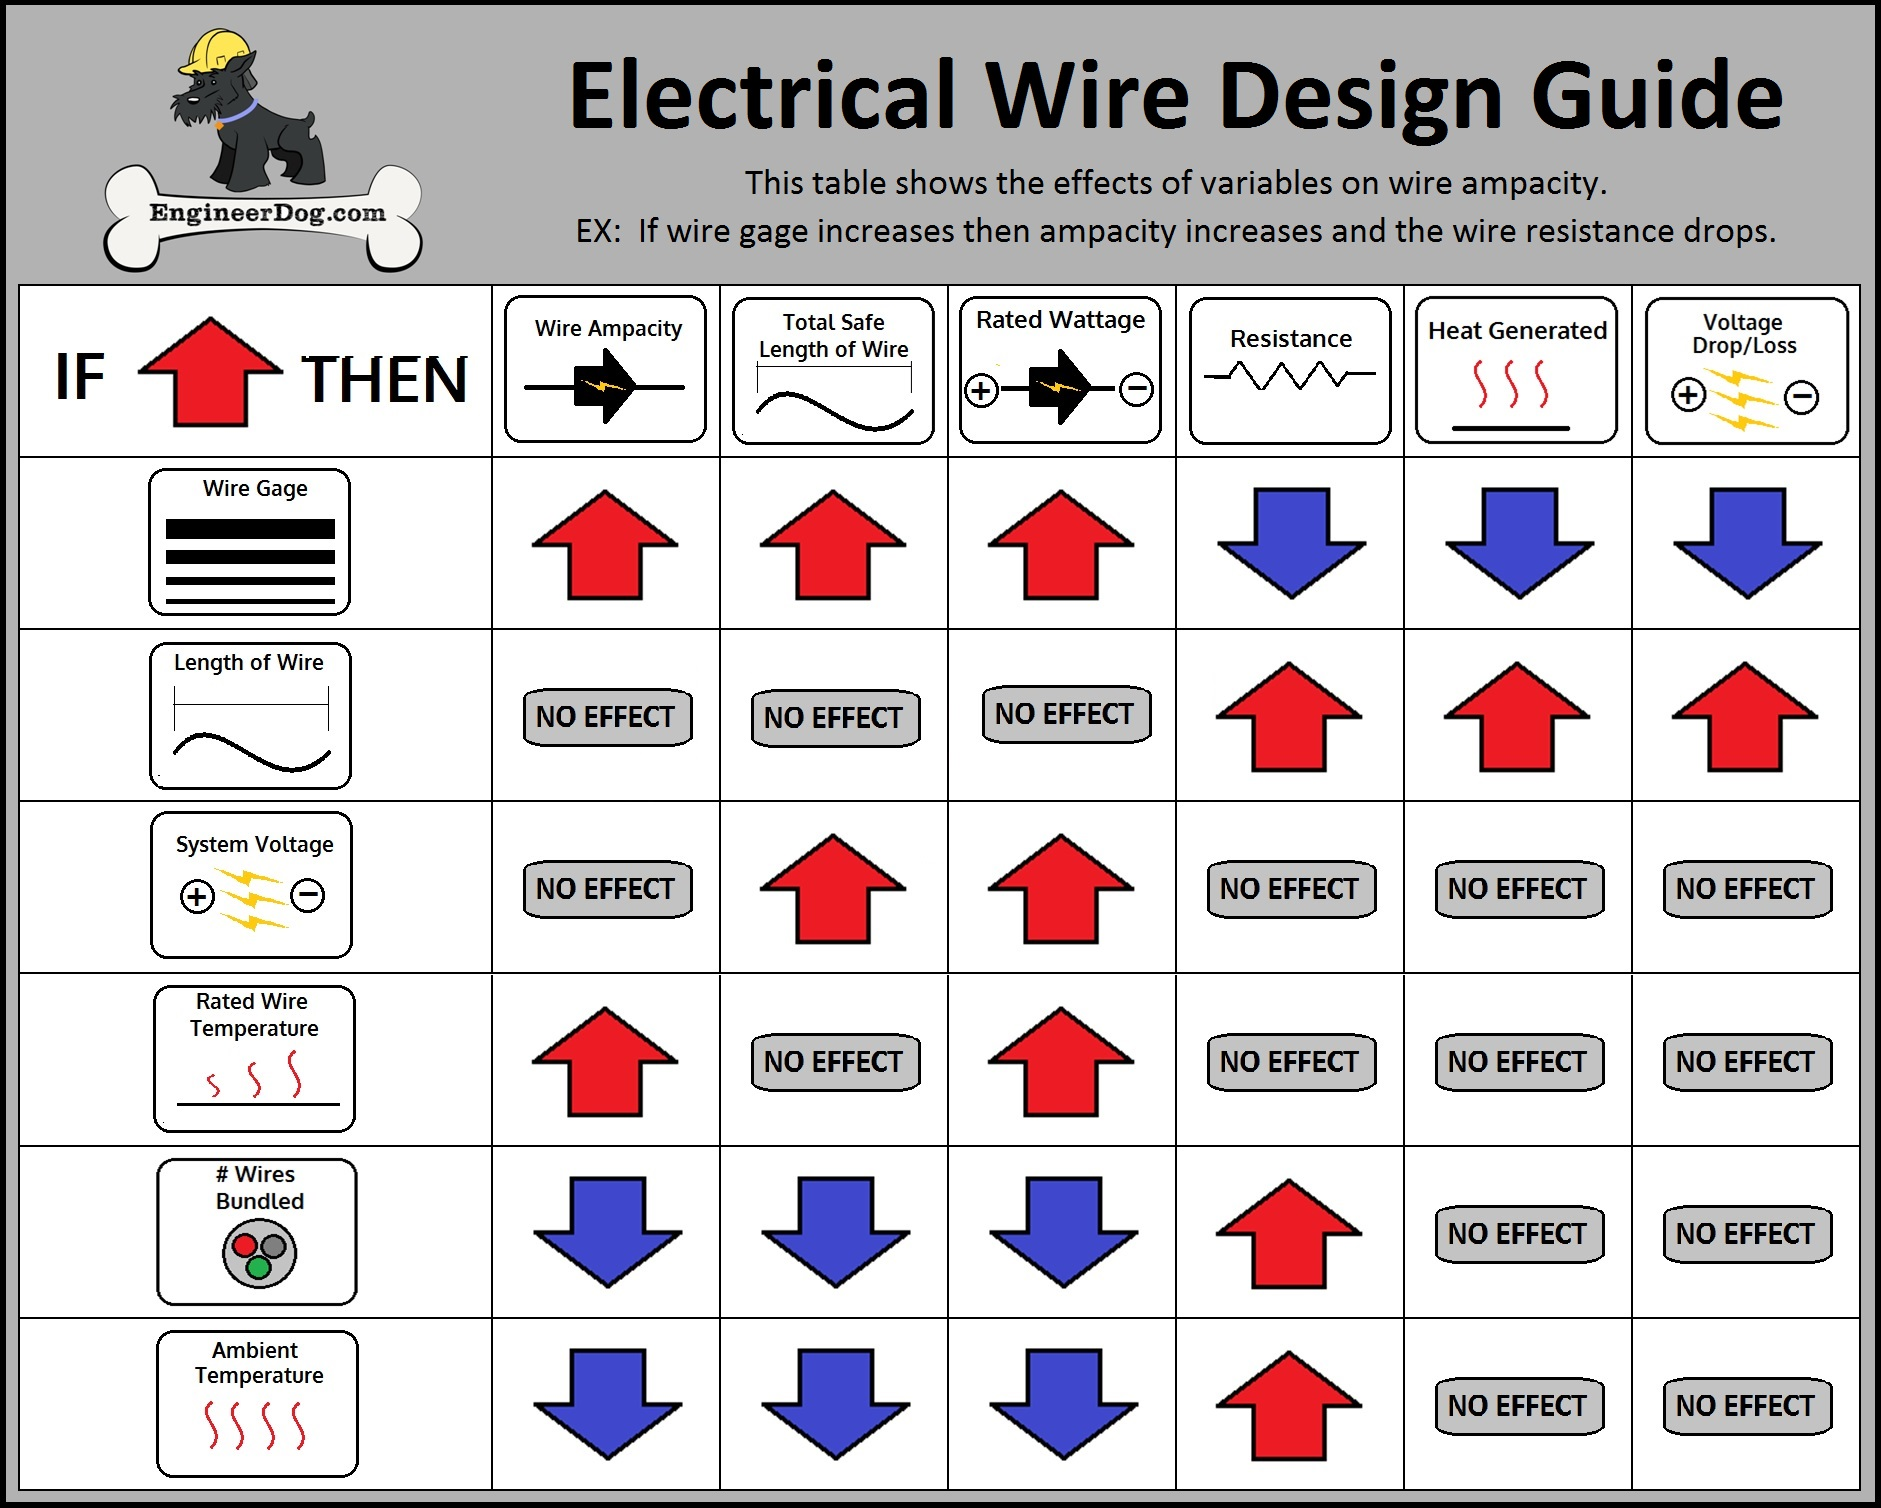 Free electrical wire gauge sizing calculator engineerdog wire sizing guide keyboard keysfo Image collections